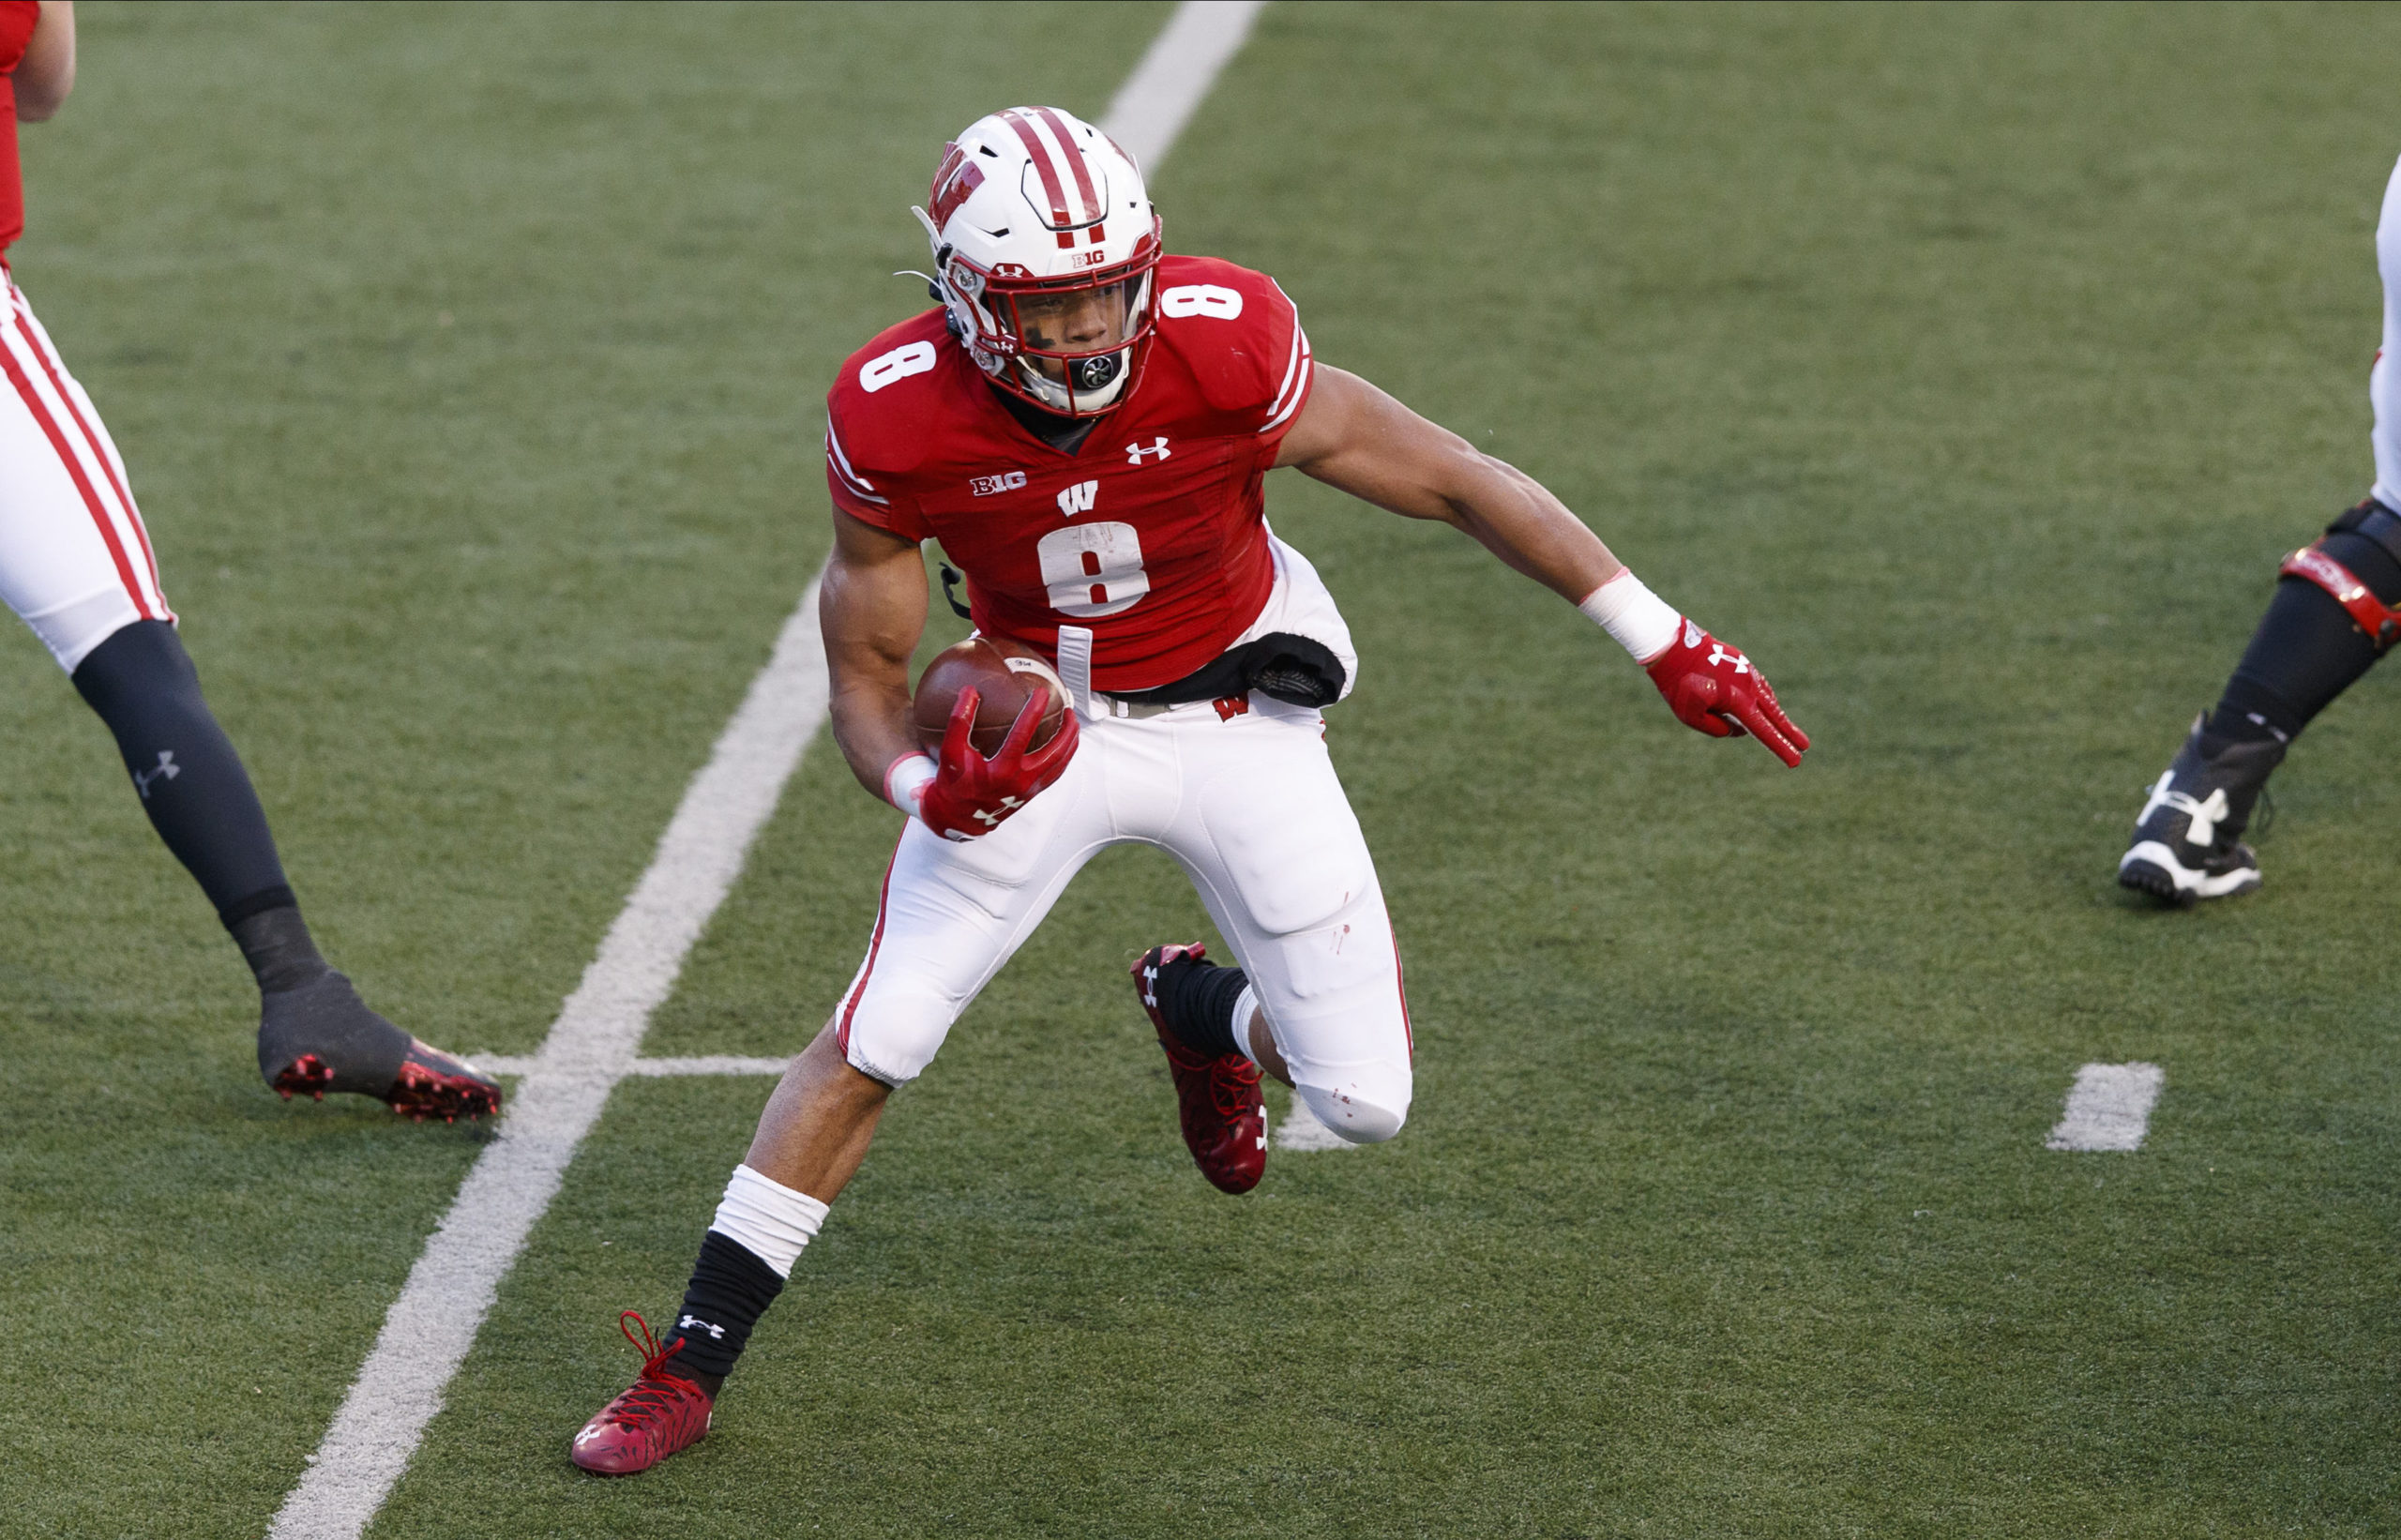 Wisconsin football: Why is Jalen Berger not getting more carries?